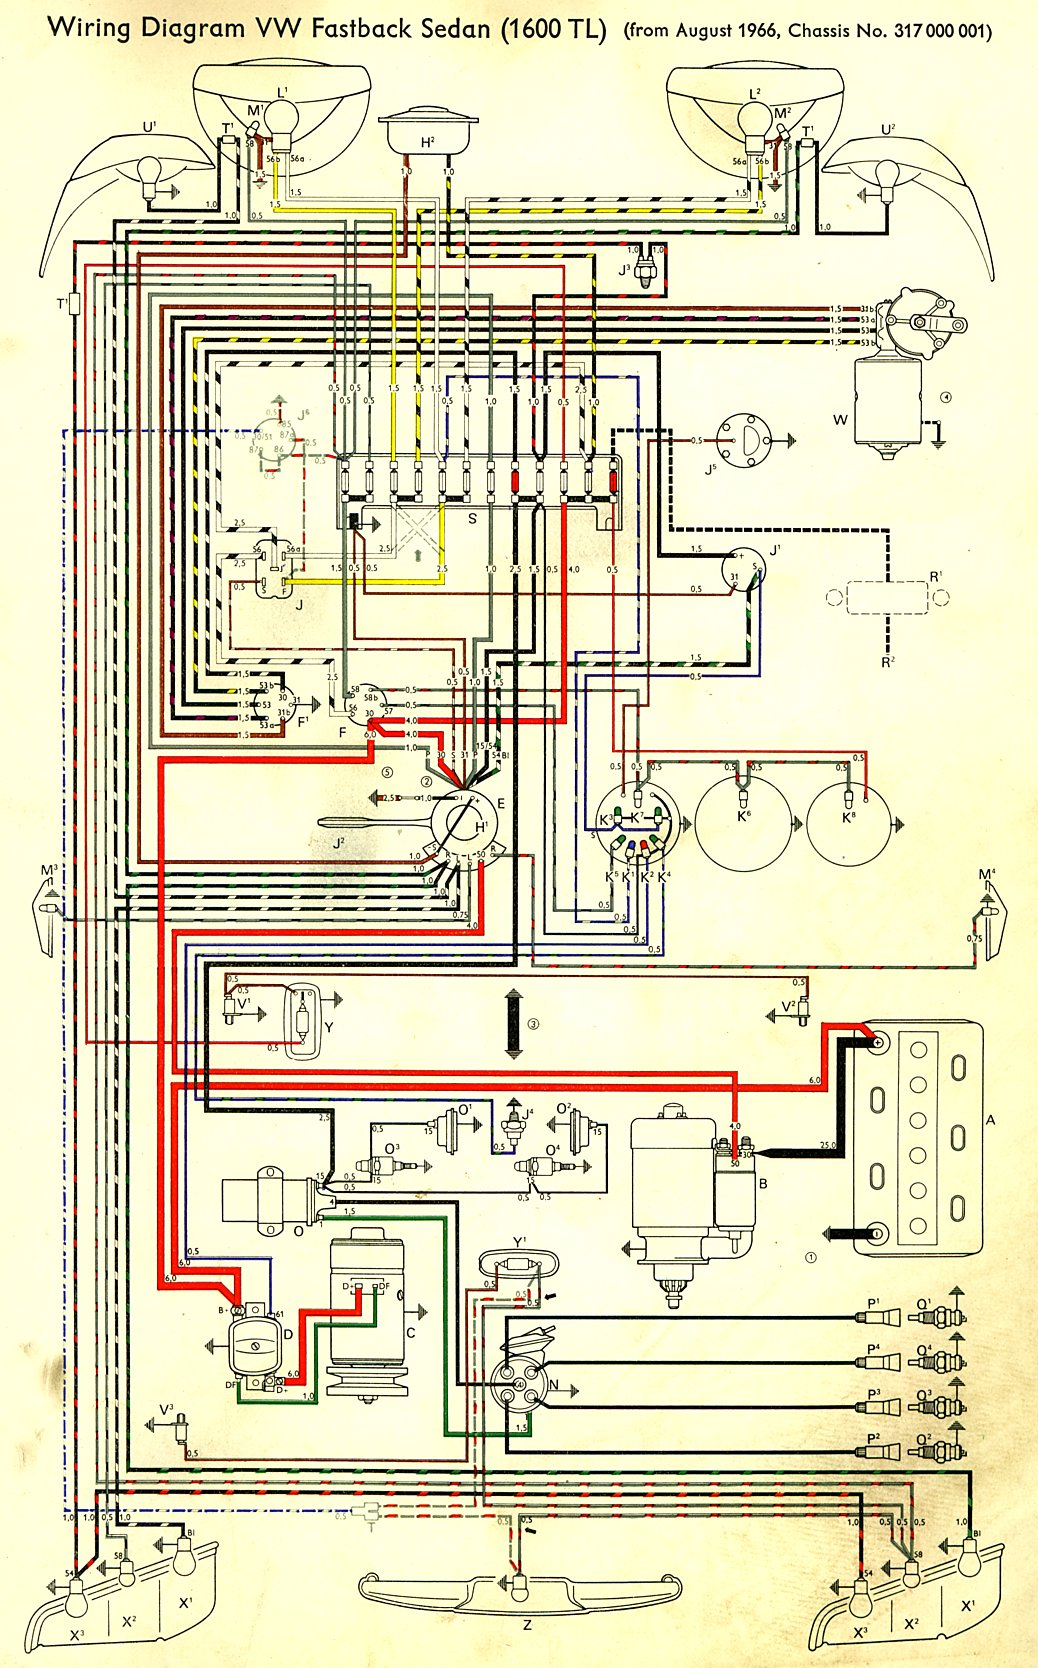 hight resolution of 1966 vw wiring diagram wiring diagram centre67 vw wiring harness wiring diagram datasource1967 vw wiring harness